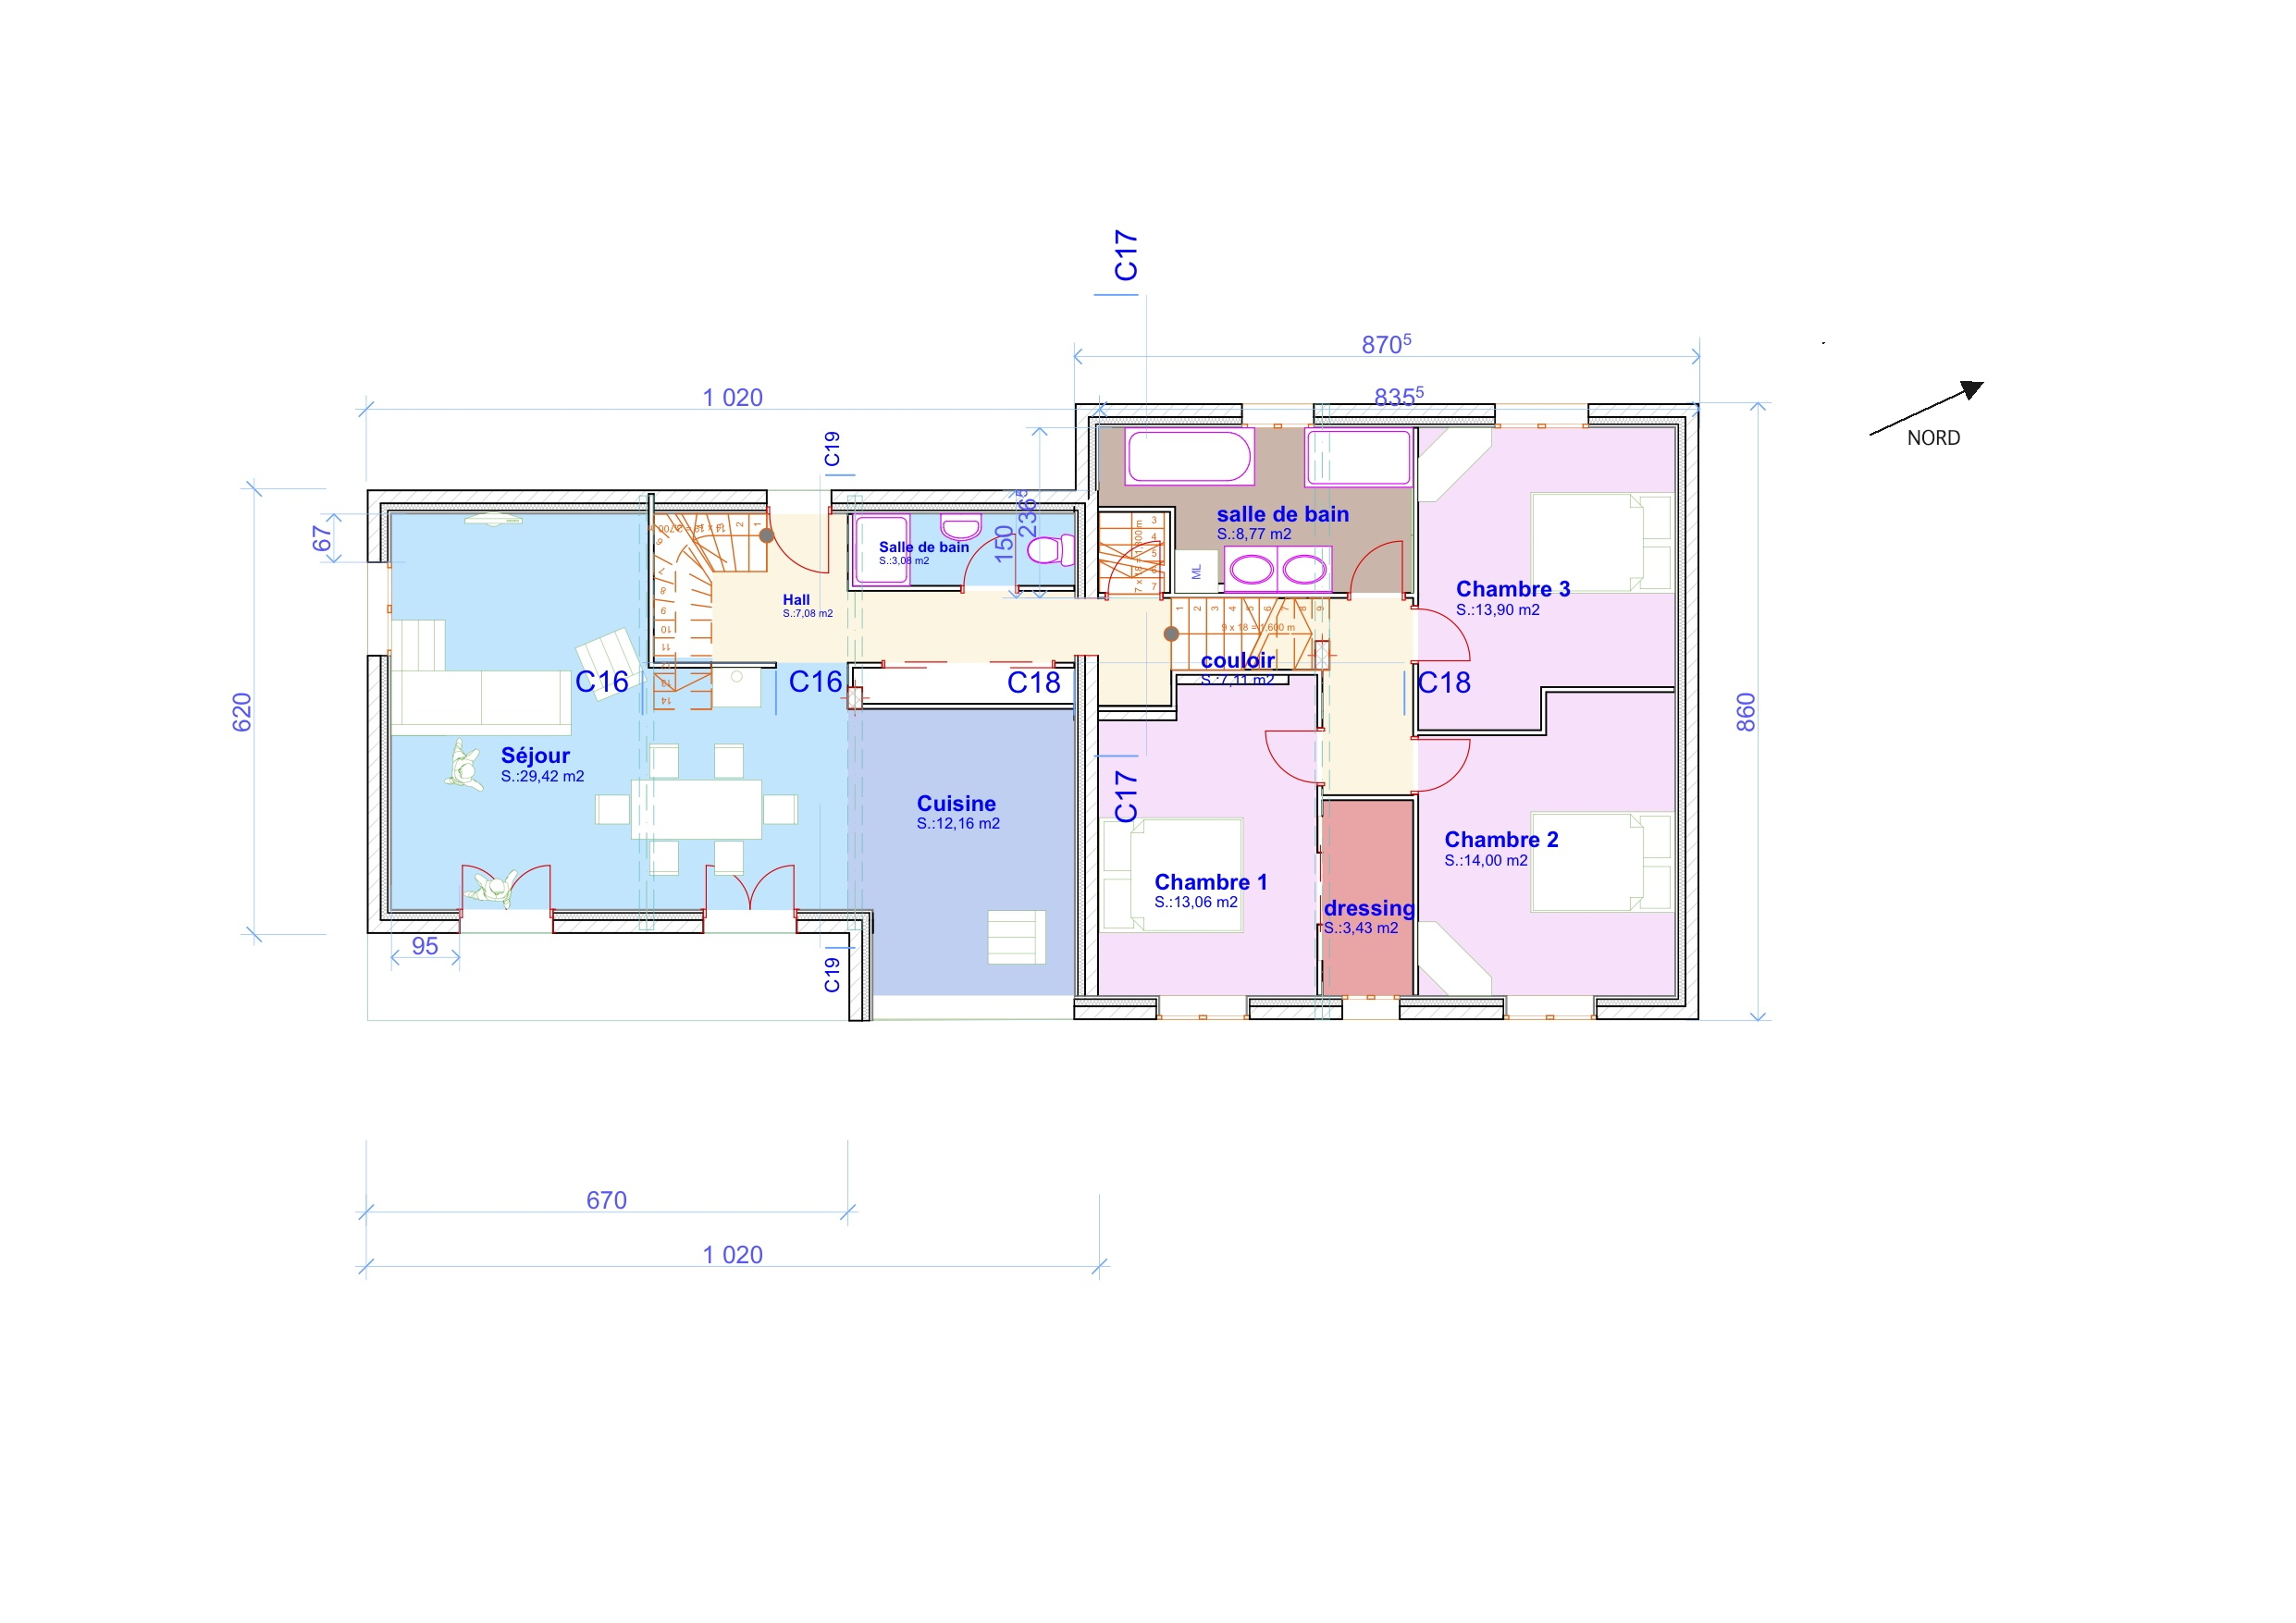 Avis sur les plans de renovation d 39 une maison 7 messages for Les plans de lowe